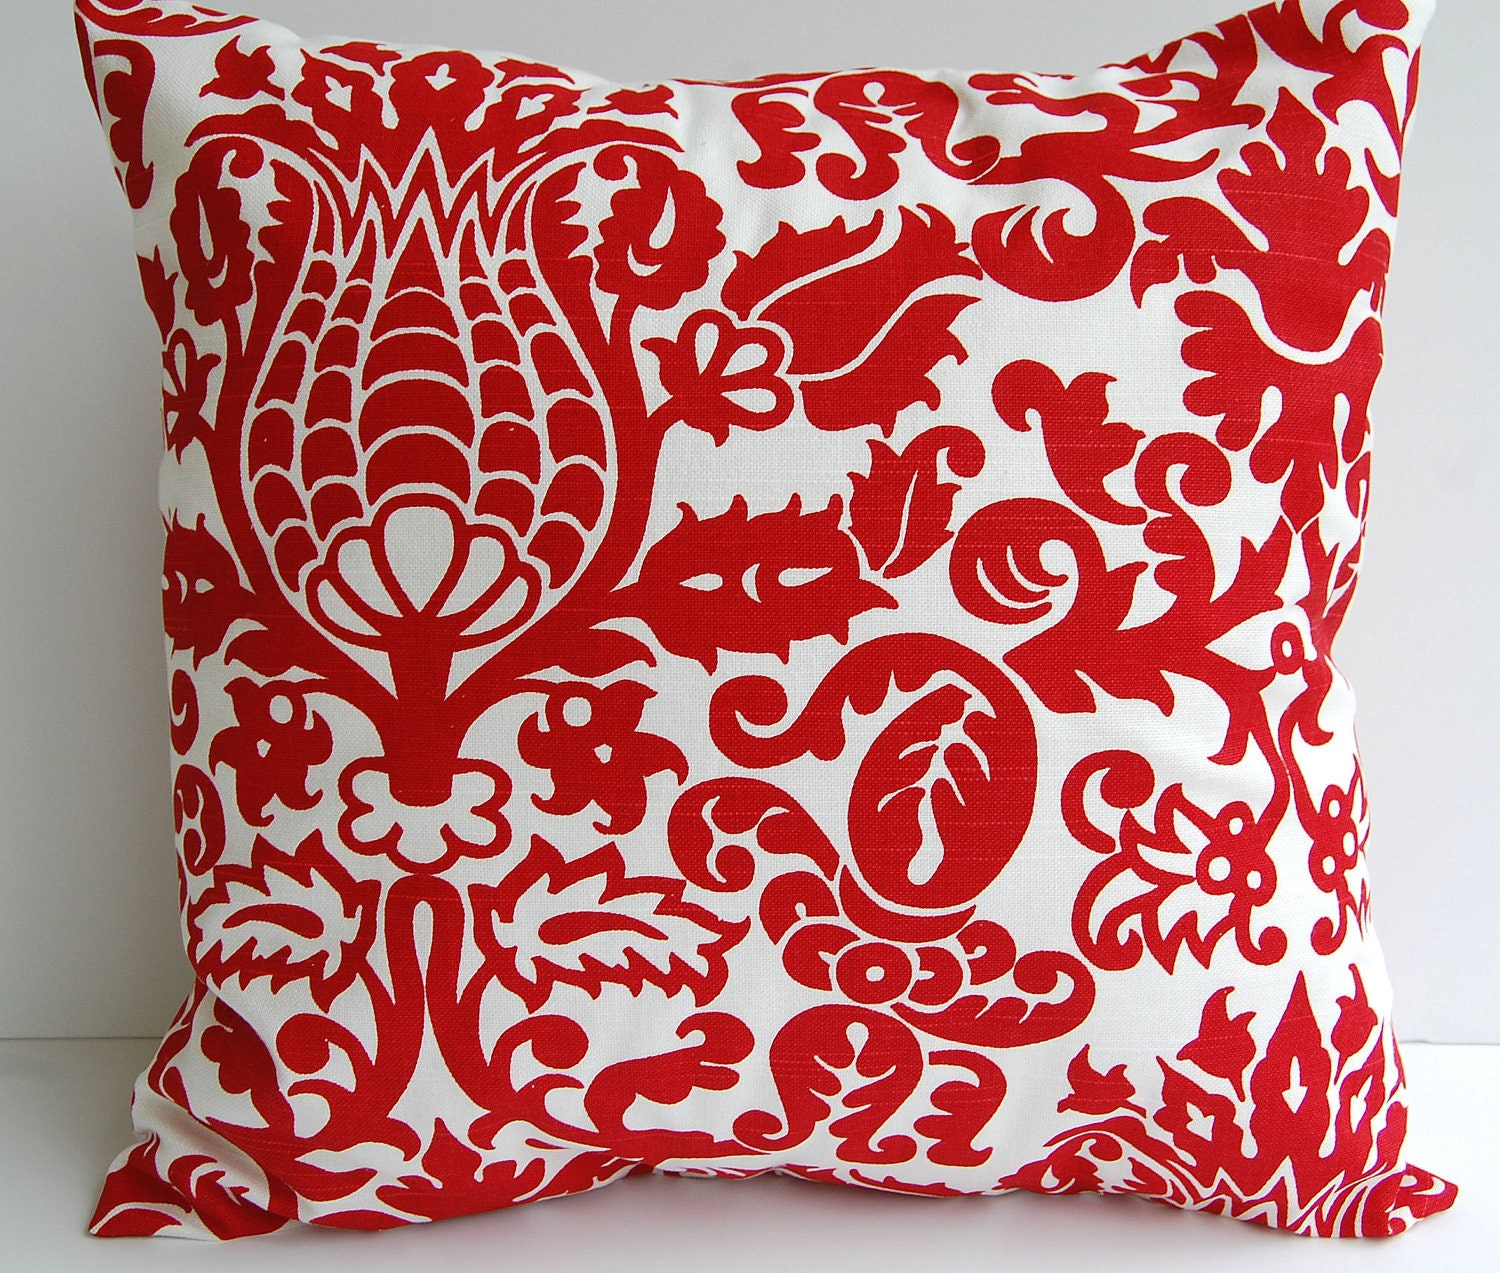 Throw Pillow Covers 20 X 20 : Red throw pillow cover 20 x 20 one decorative by ThePillowPeople